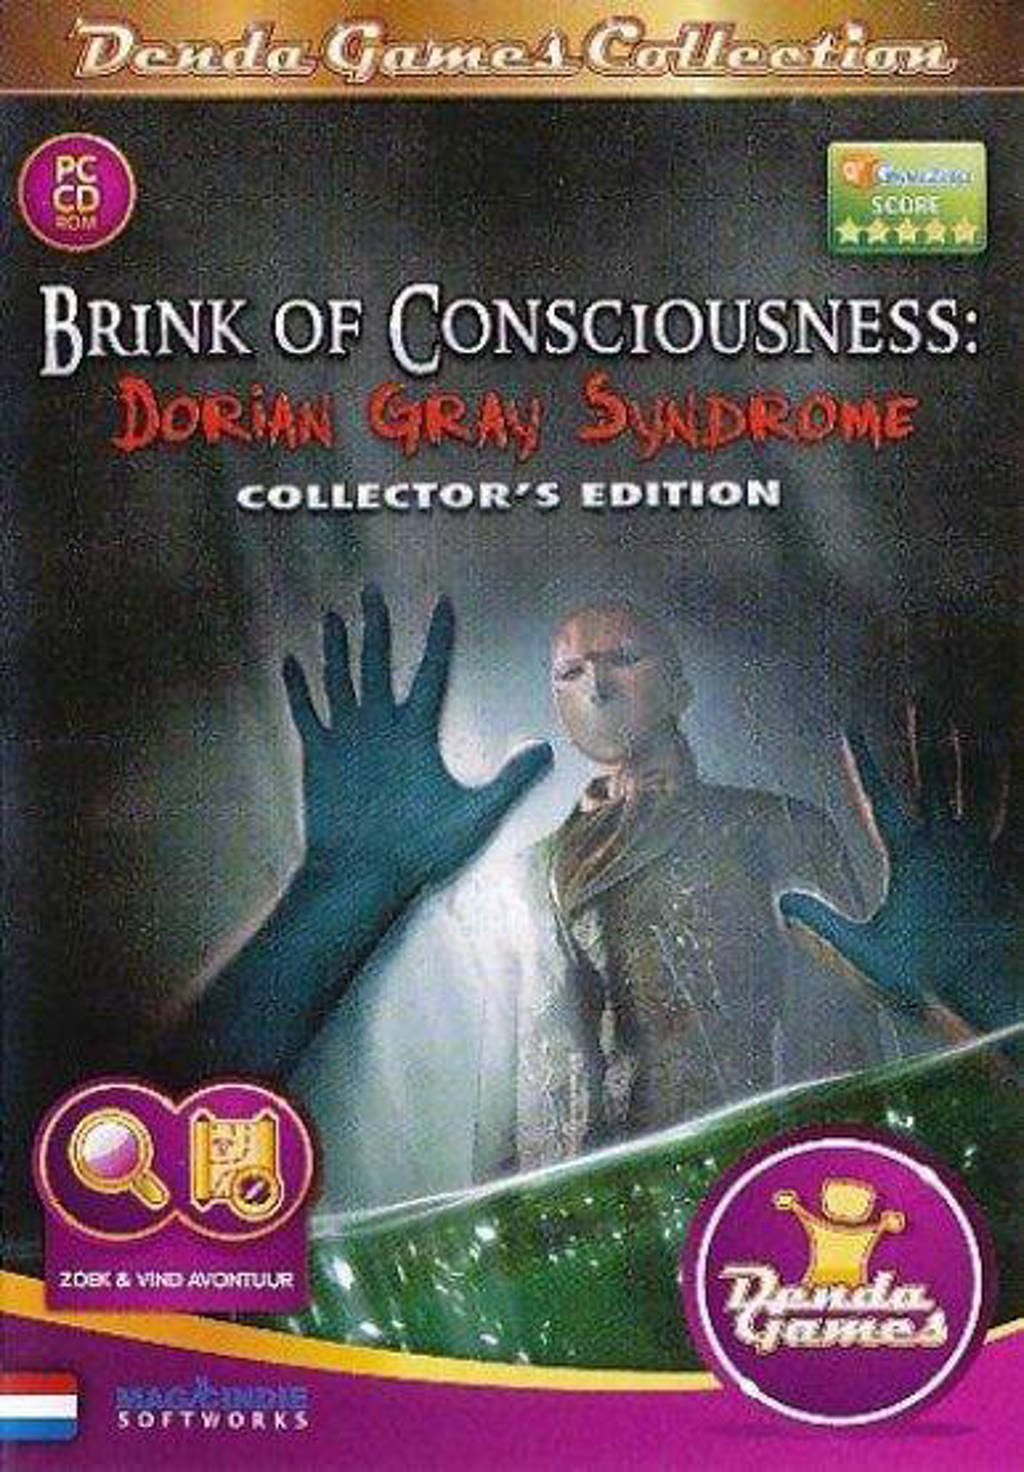 Brink of consciousness - Dorian Gray syndrome (Collector's edition) (PC)